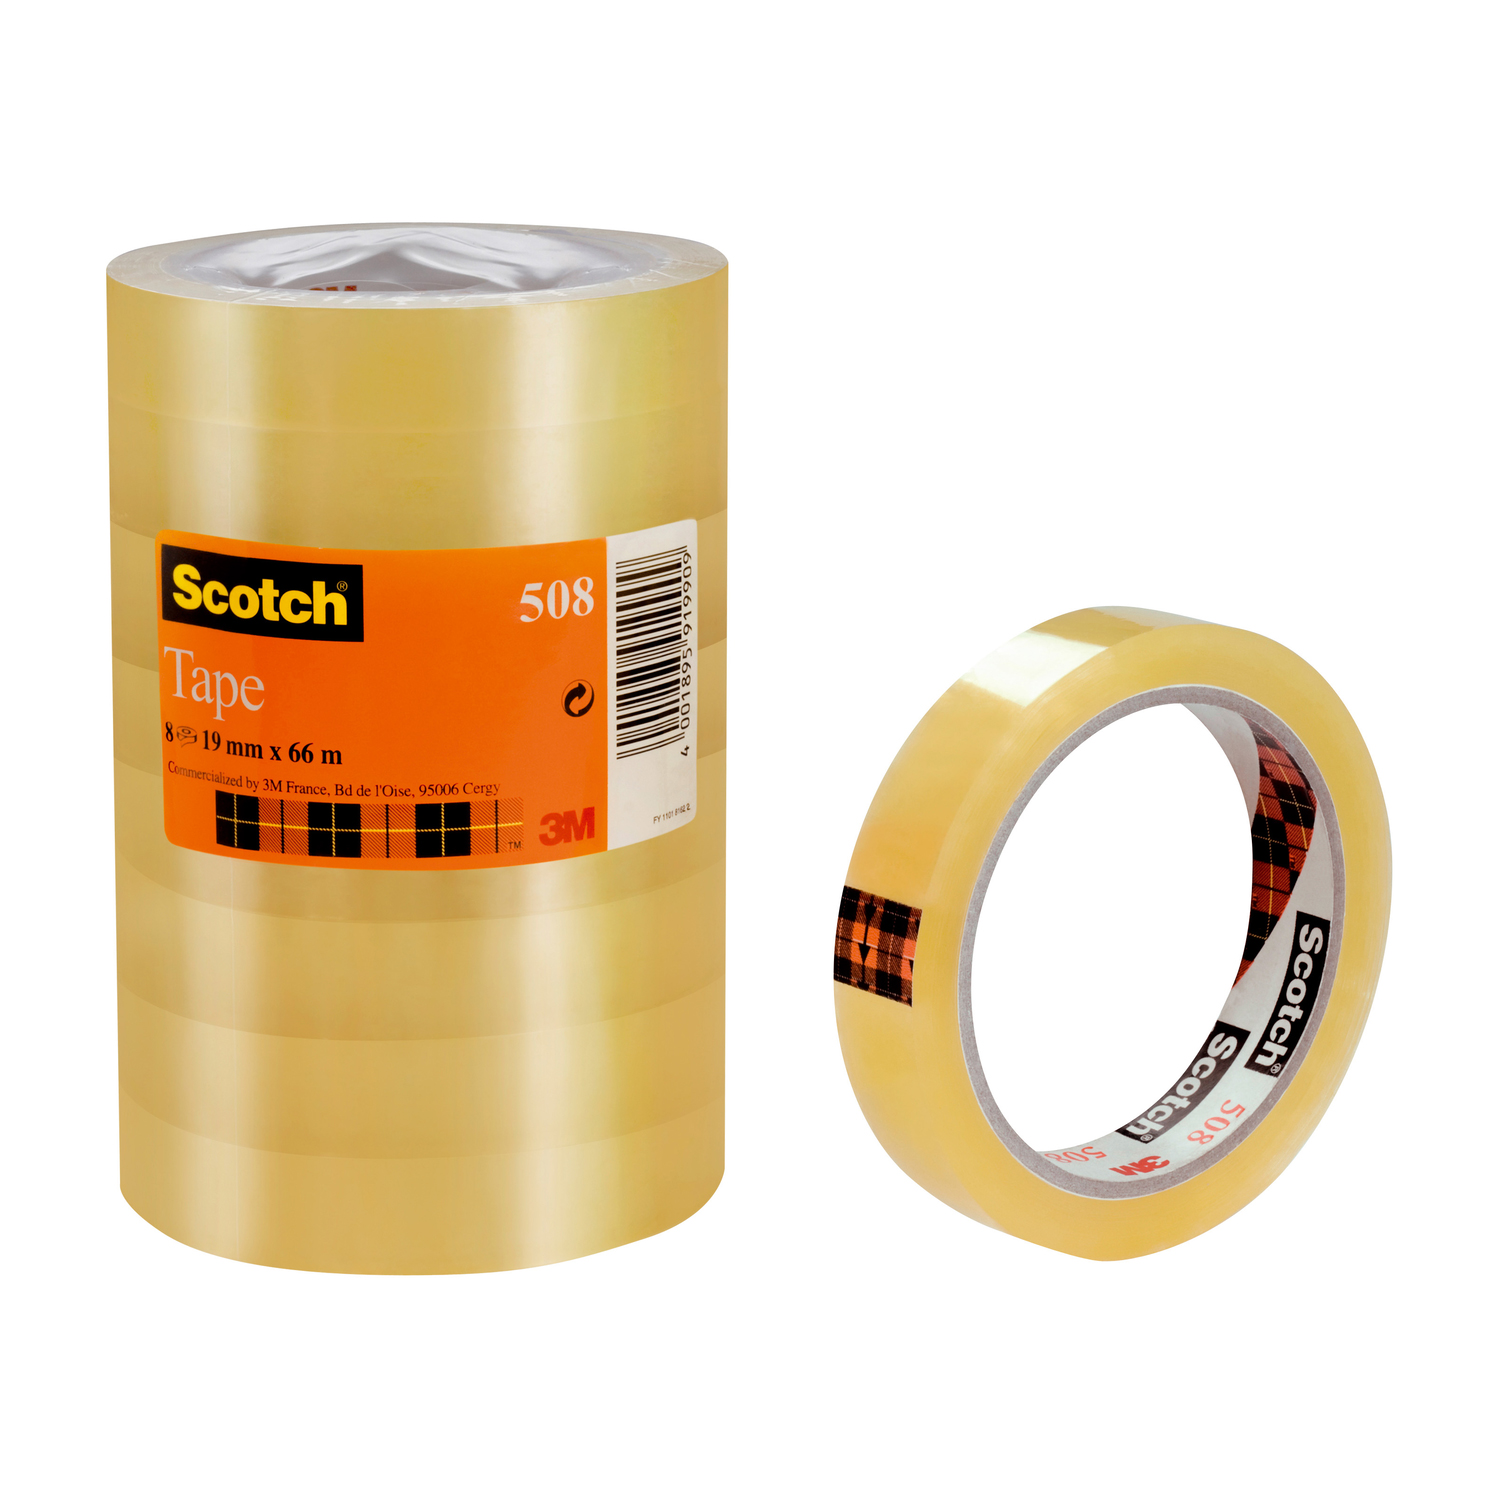 Transparent tape Scotch 508 Clear Tape 19mmx66m Clear Ref 7000080794 Pack 8